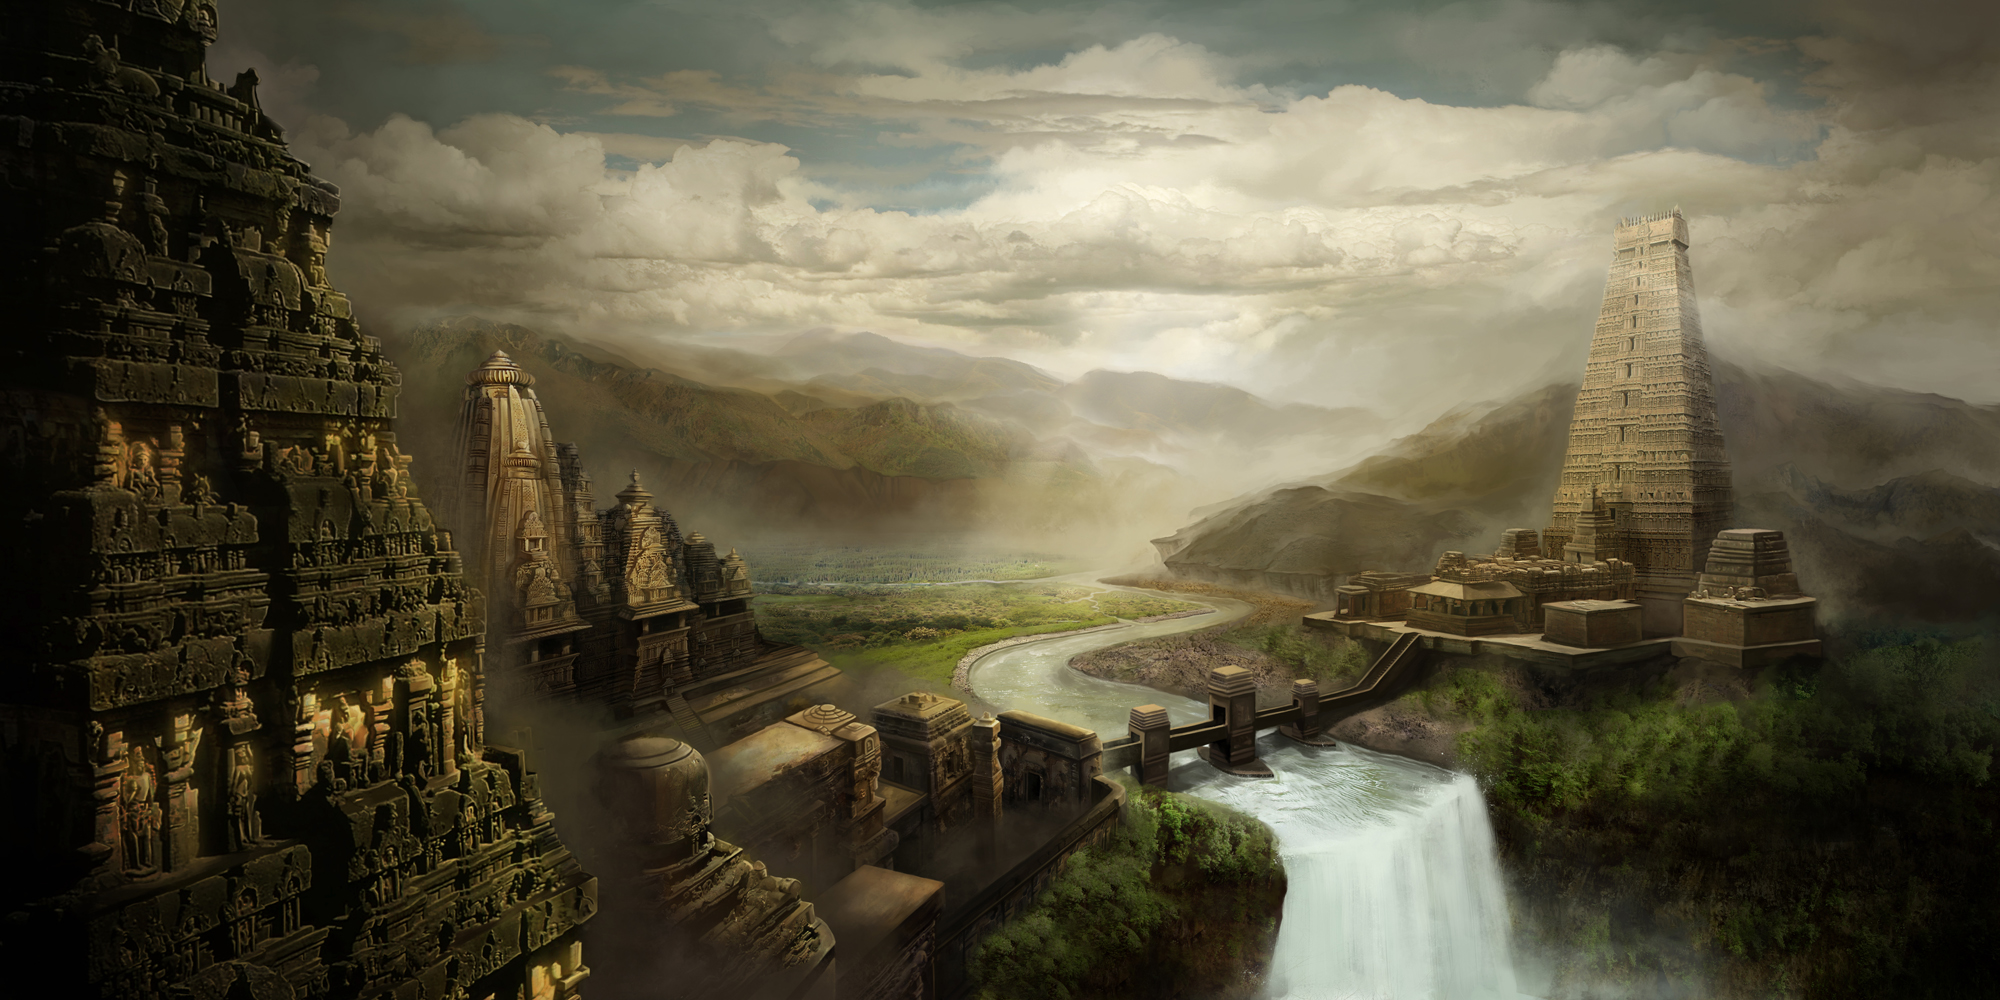 Indraprastha, the Temple City